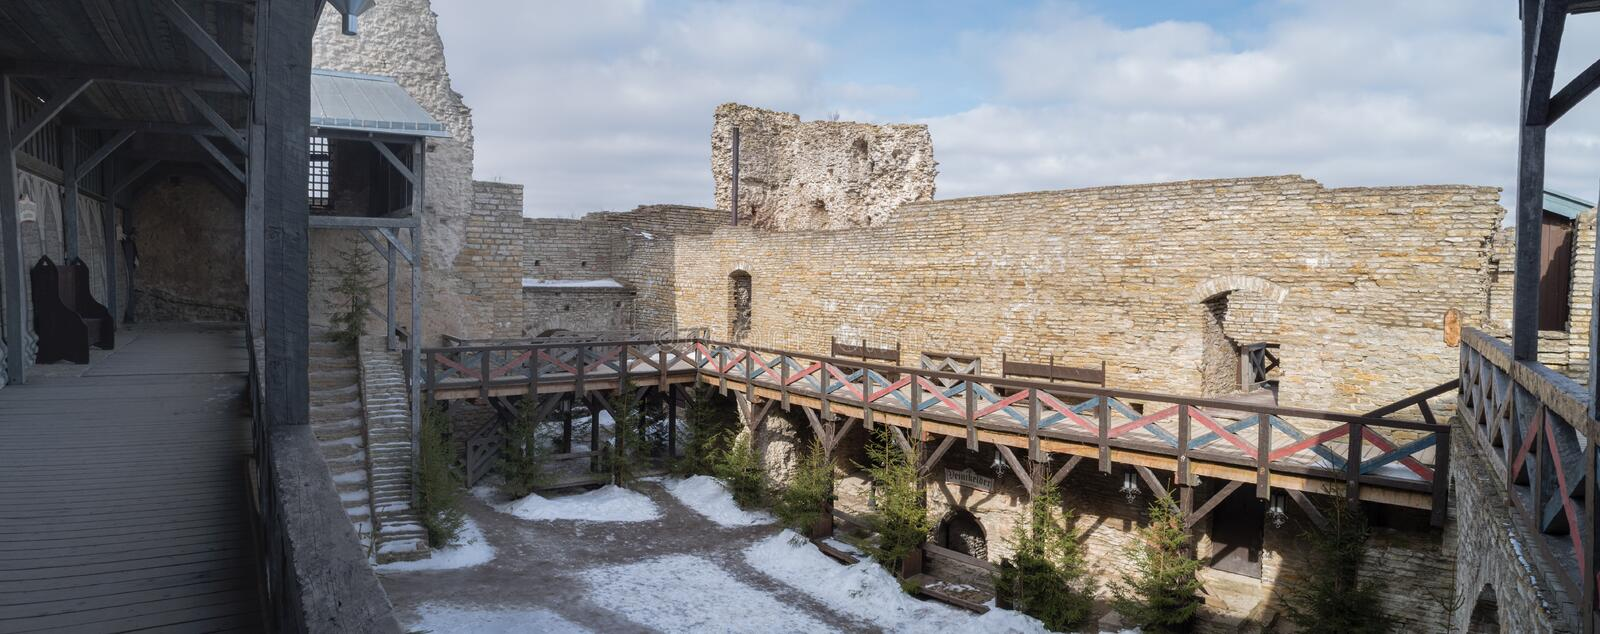 Gallery in the old castle royalty free stock images